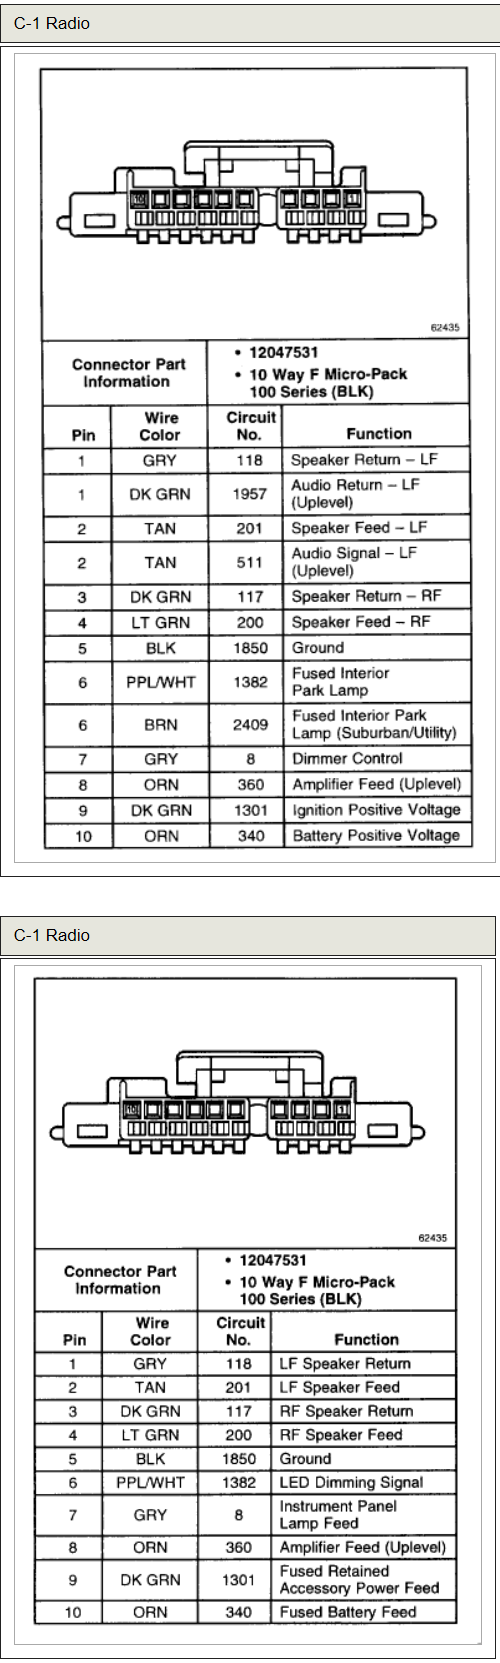 small resolution of chevrolet car radio stereo audio wiring diagram autoradio connector wire installation schematic schema esquema de conexiones anschlusskammern konektor